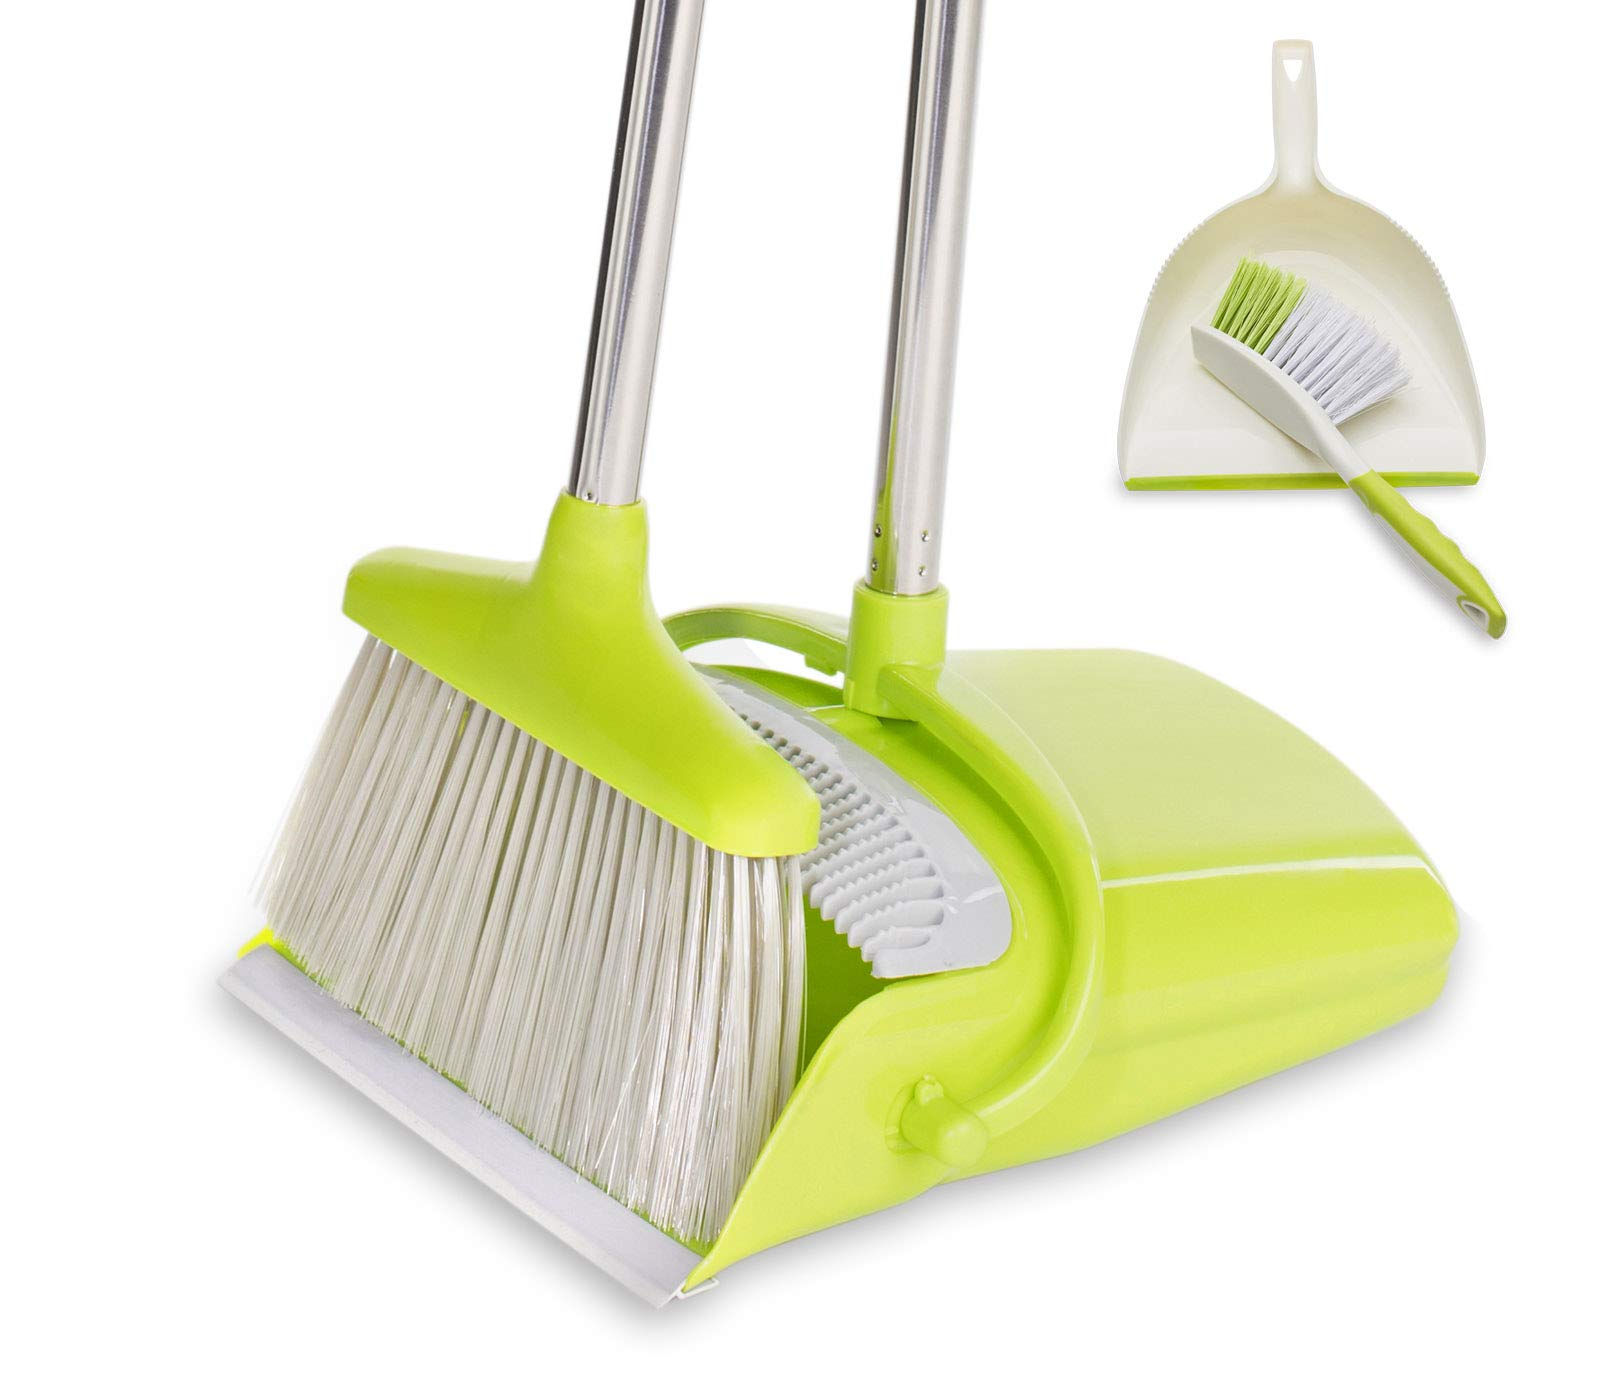 BristleComb Broom and Dustpan Set - Variable Handle Length Broom and Dustpan - Includes: Hand Brush and Dustpan Combo - Lightweight and Upright Stand for Cleaning Your Kitchen, Home, and Lobby (Green) by JFB Home Products (Image #1)